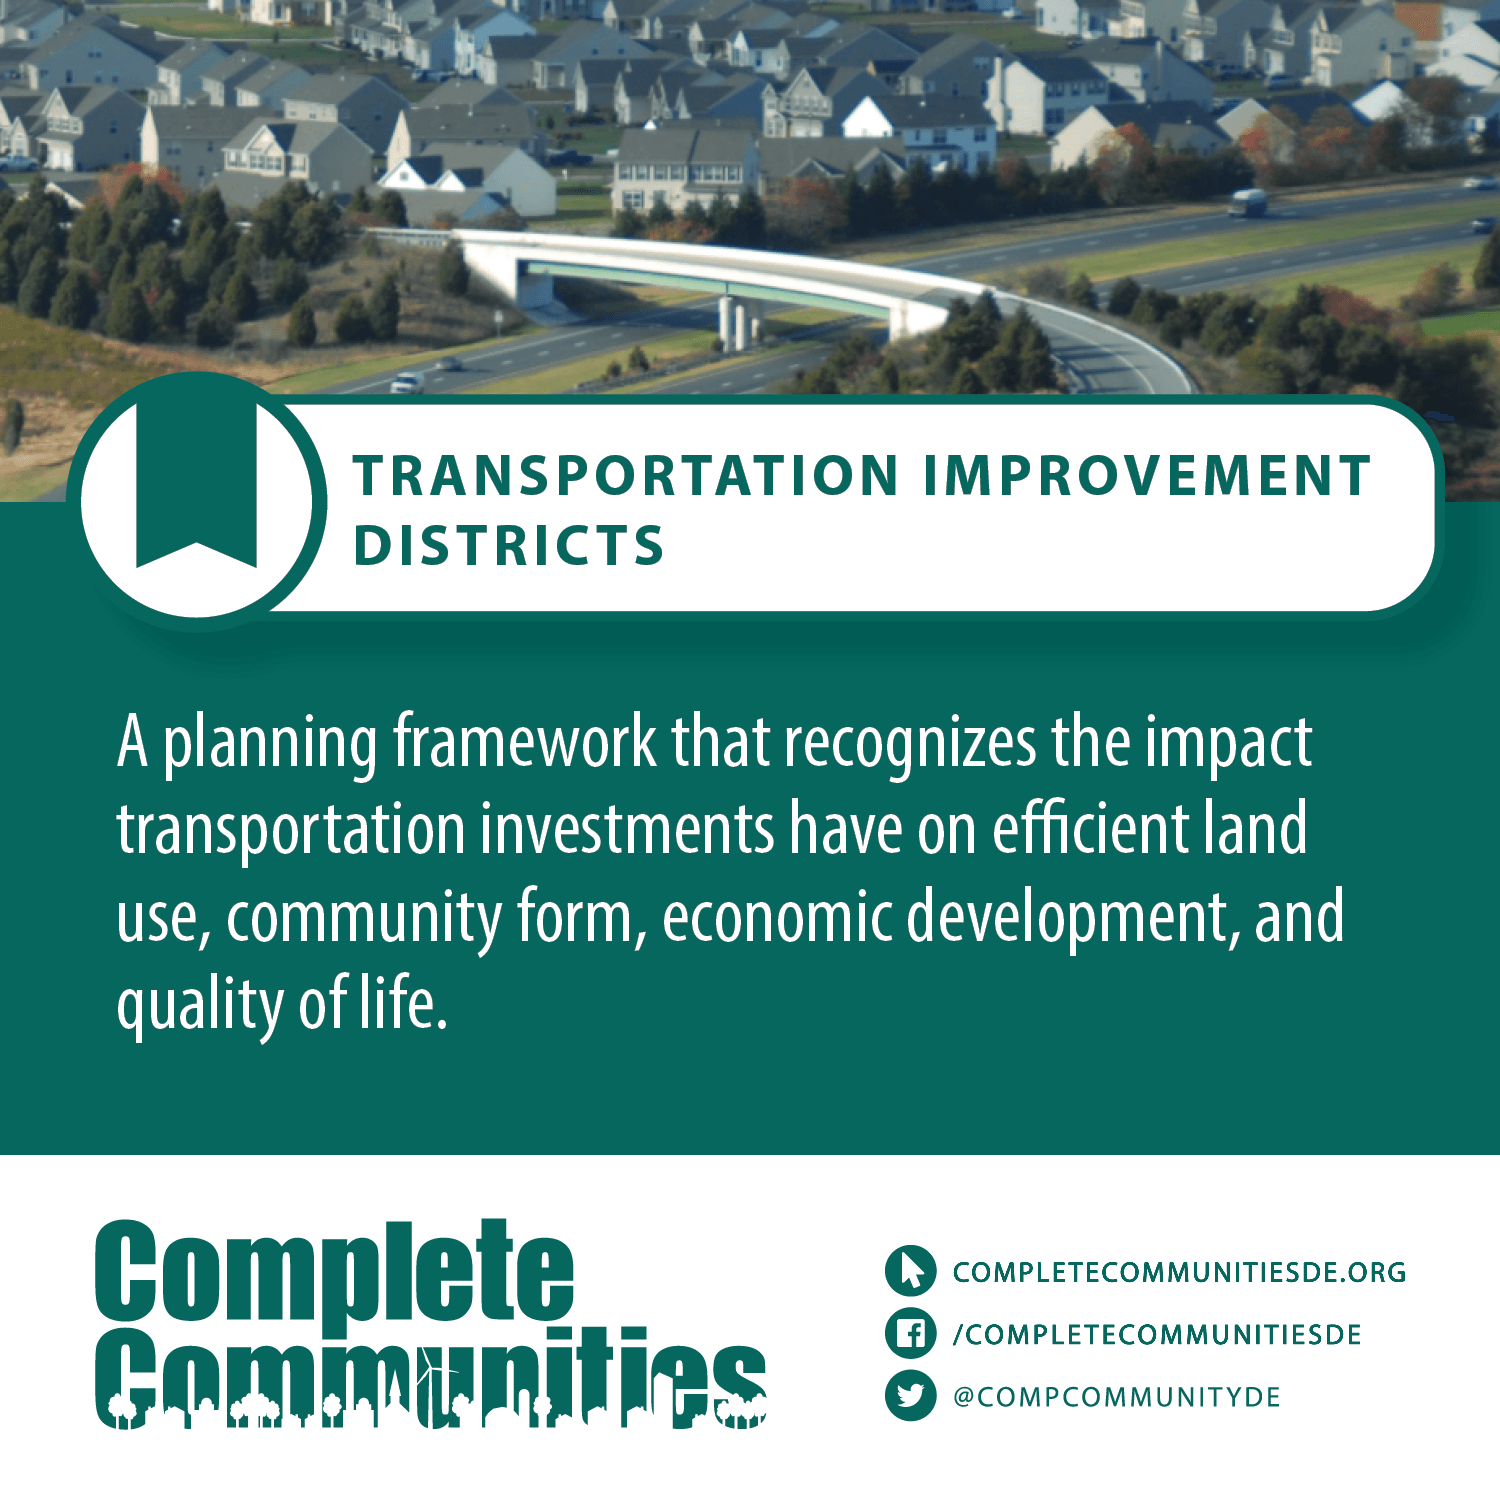 Transportation improvement districts: a planning framework that recognizes the impact transportation investments have on efficient land use, community form economic development, and quality of life.